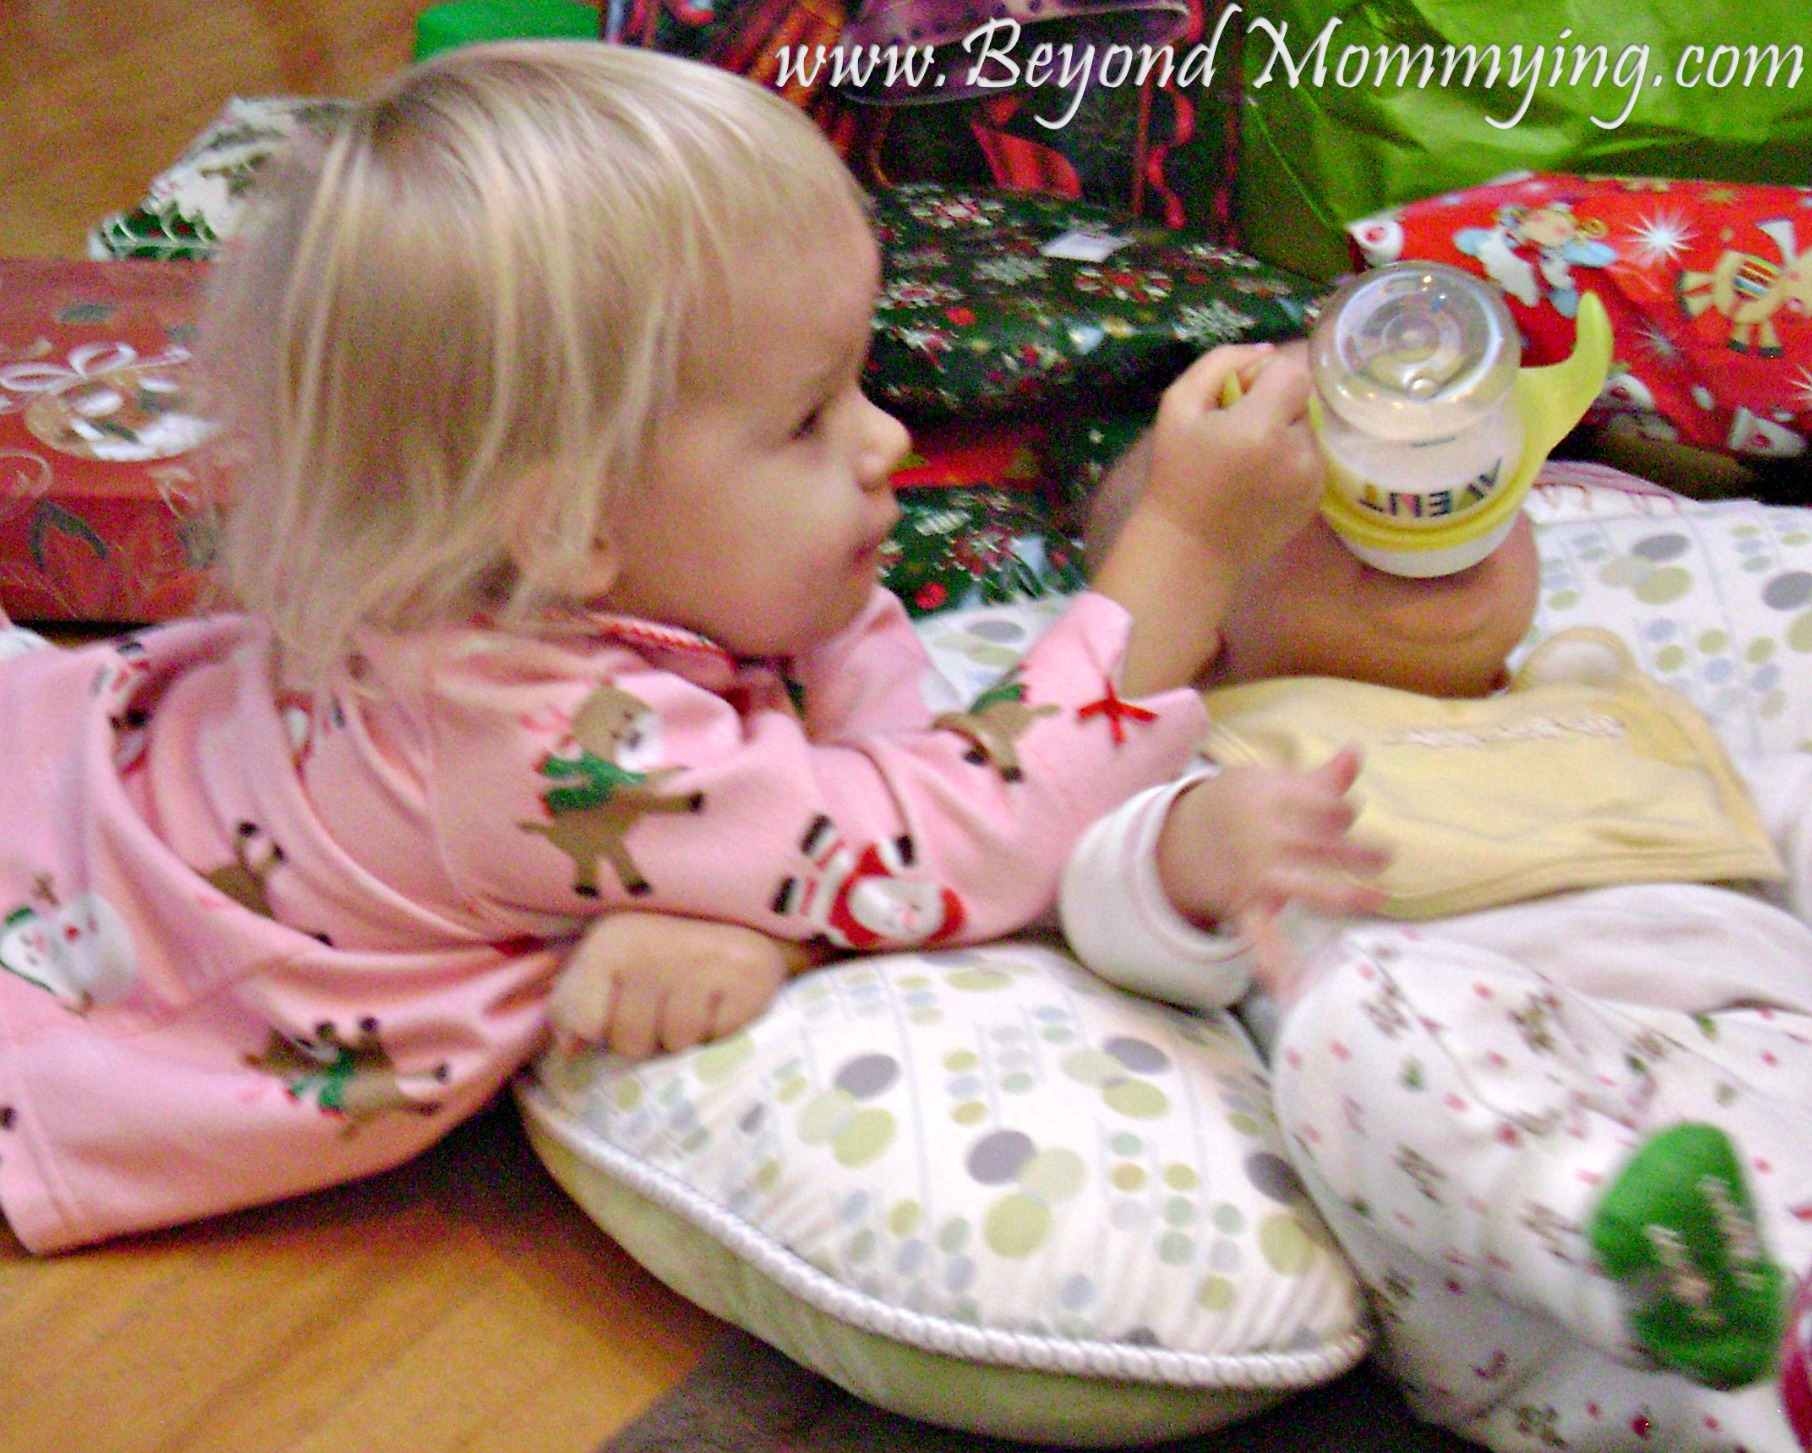 10 ways to use a boppy pillow beyond